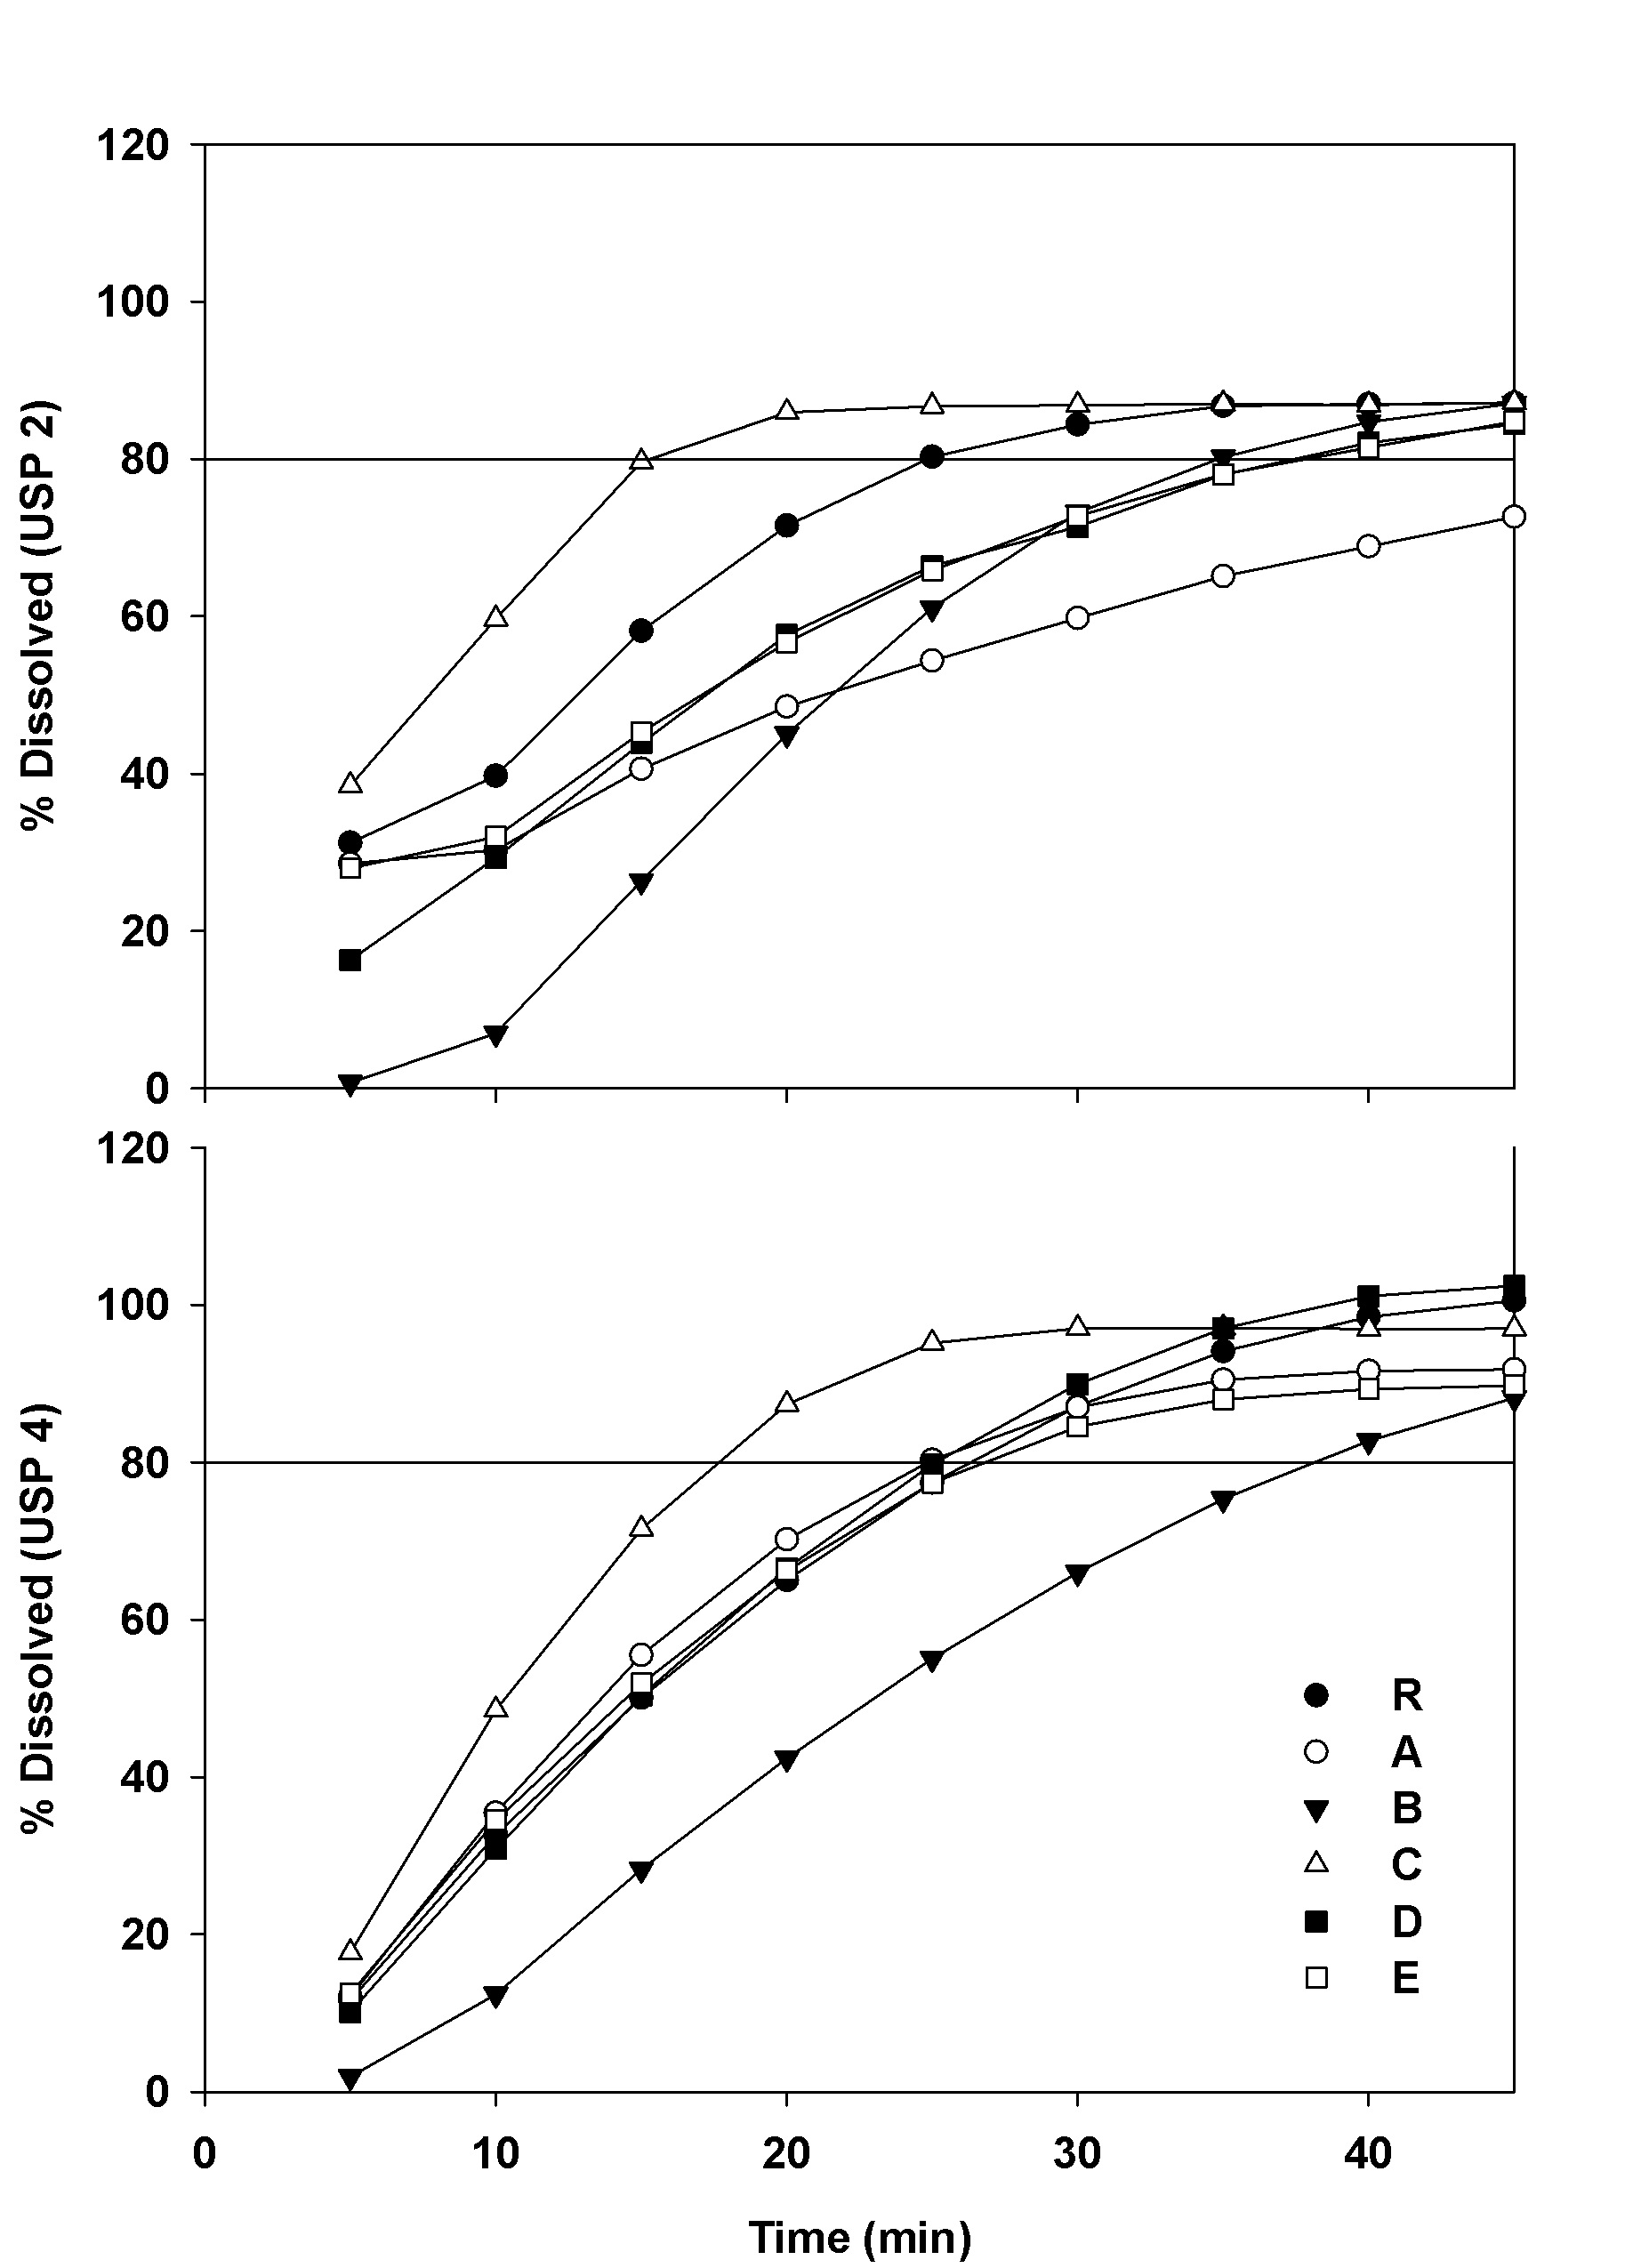 Naproxen 40 mg.doc - 2 In Vitro Dissolution Profiles Of Naproxen Sodium From All Studied Drug Products Error Bars Were Omitted For Clarity The Straight Line Shows Q 80